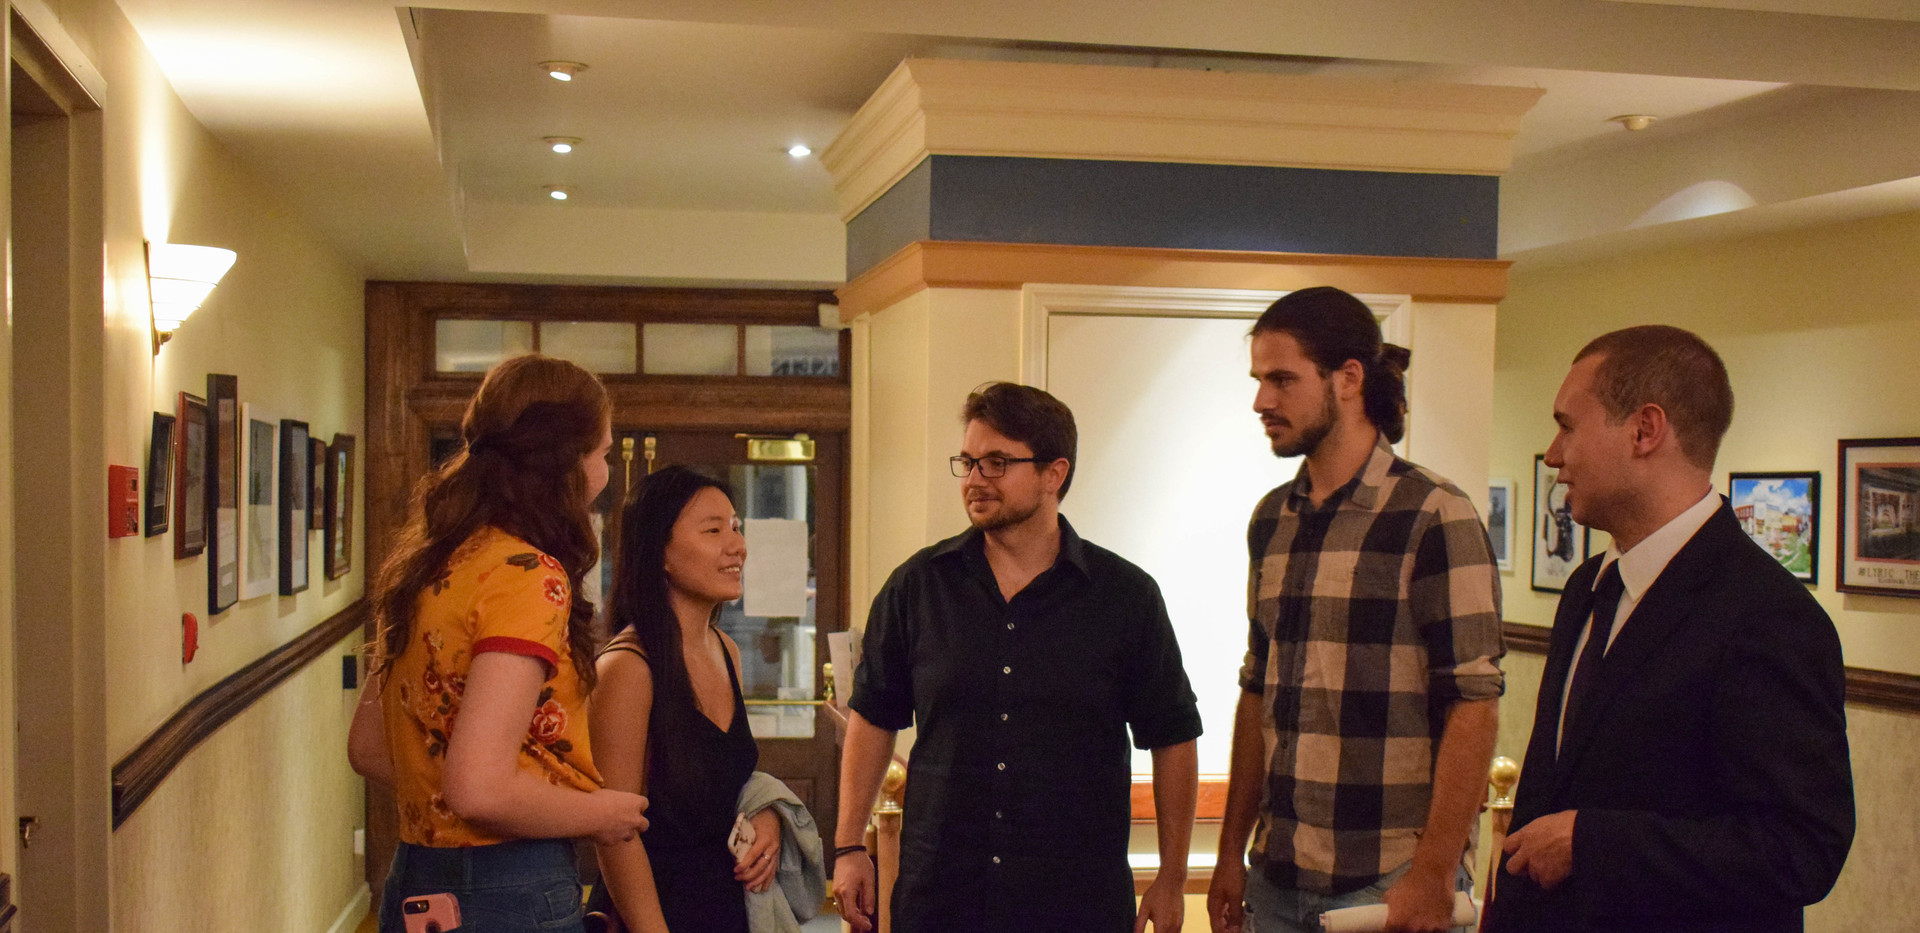 Festival Director W. Trent Welstead (right) interacting with the cast and crew of Disconnected.